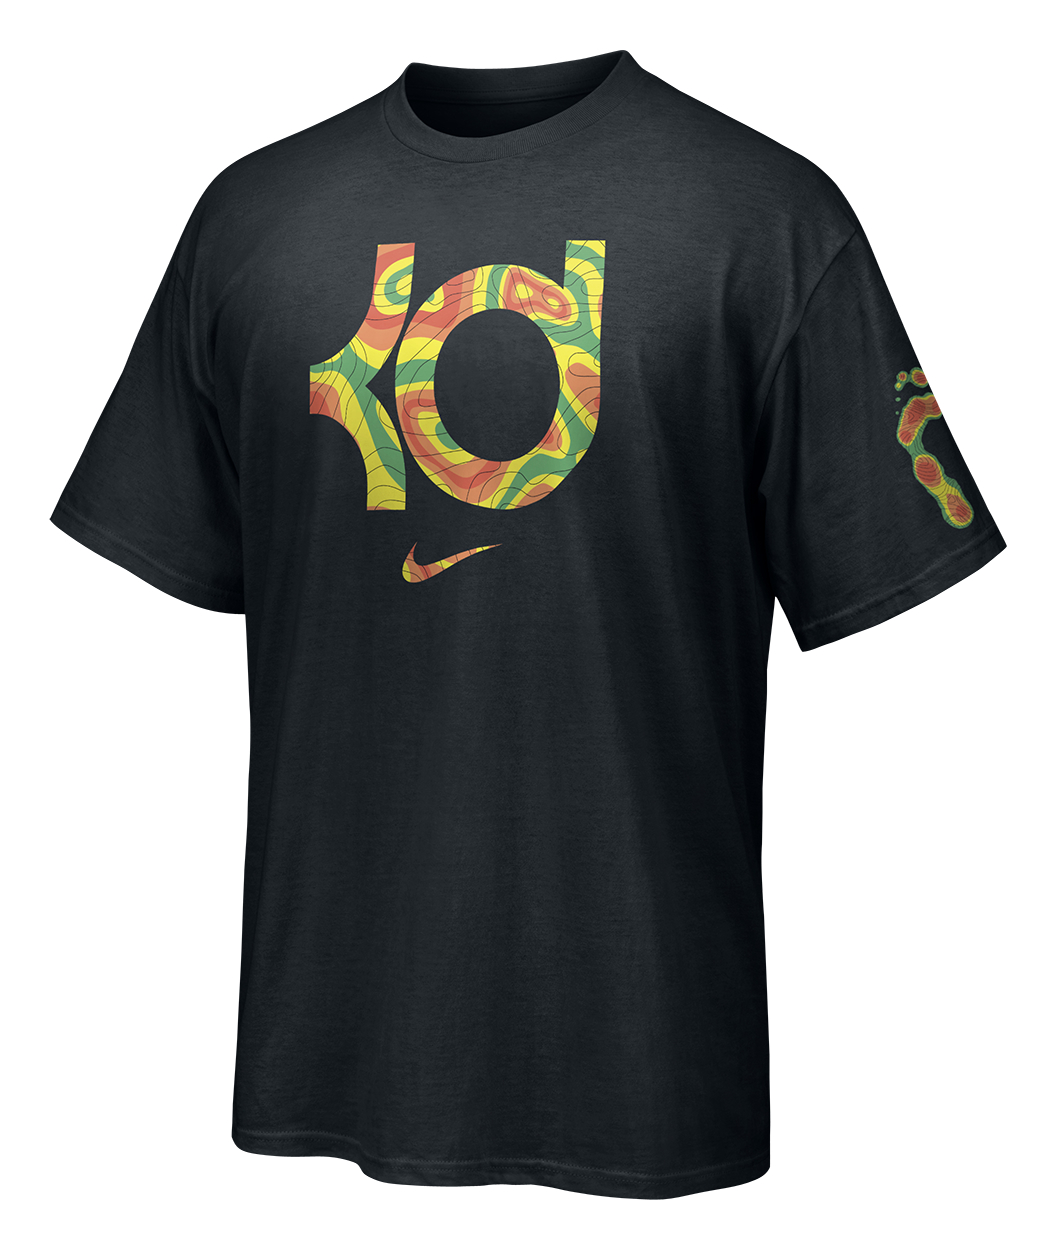 snkrology a soft spot nike kd weatherman t shirt. Black Bedroom Furniture Sets. Home Design Ideas